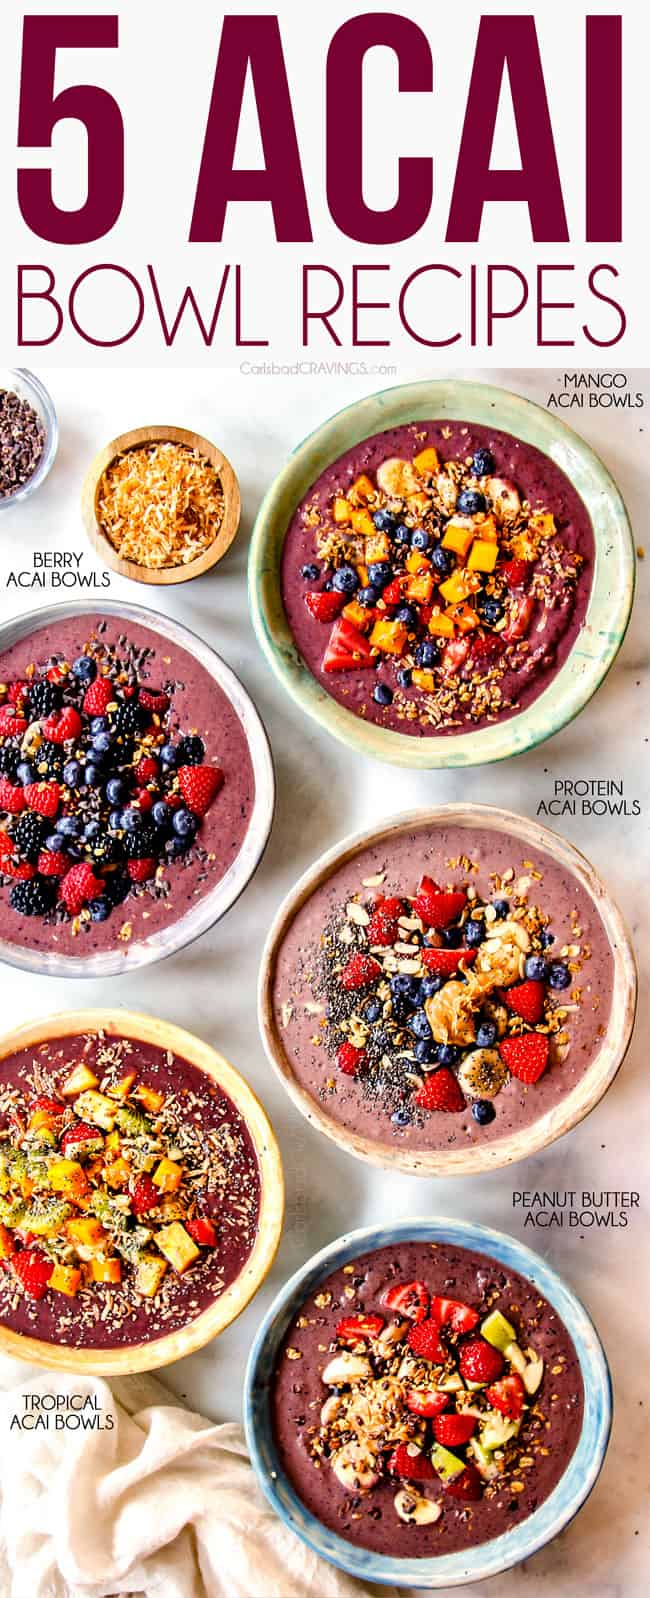 top bowl of 5 different acai bowl recipes: tropical acai bowl, berry acai bowl, peanut butter acai bowl, protein acai bowl and tropical acai bowl